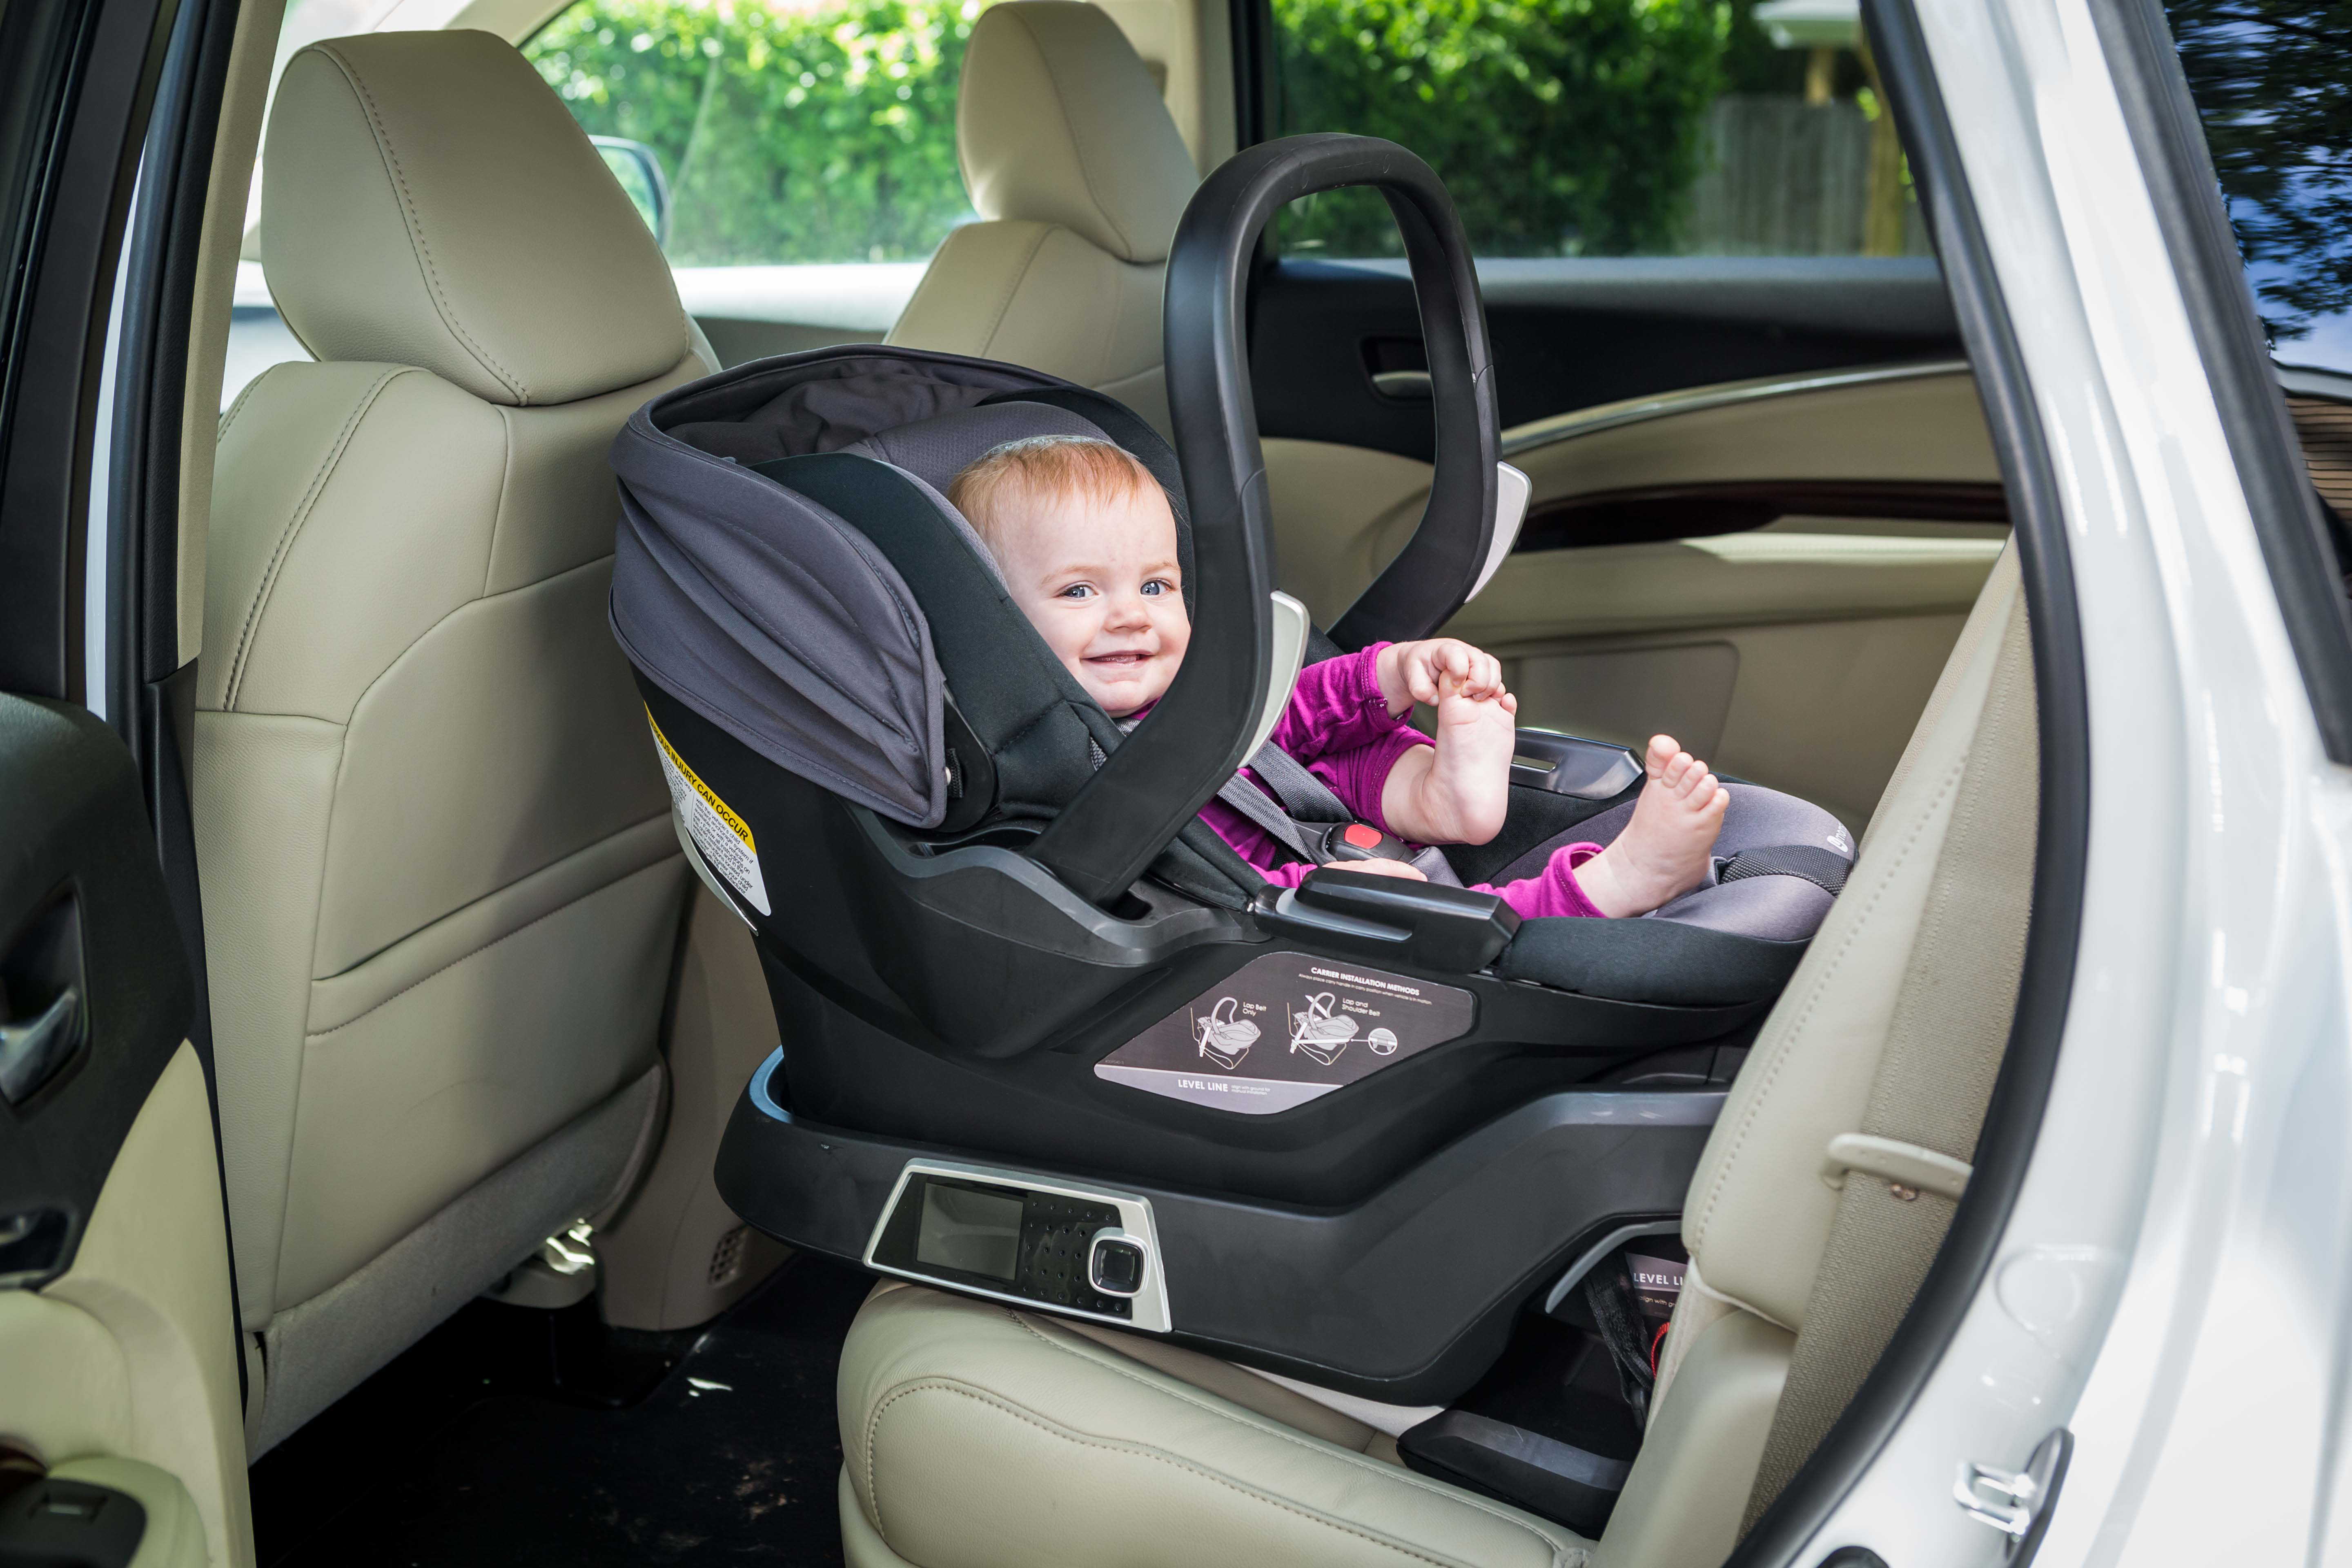 4 Out of 5 Car Seats Are Installed Incorrectly | Business Wire